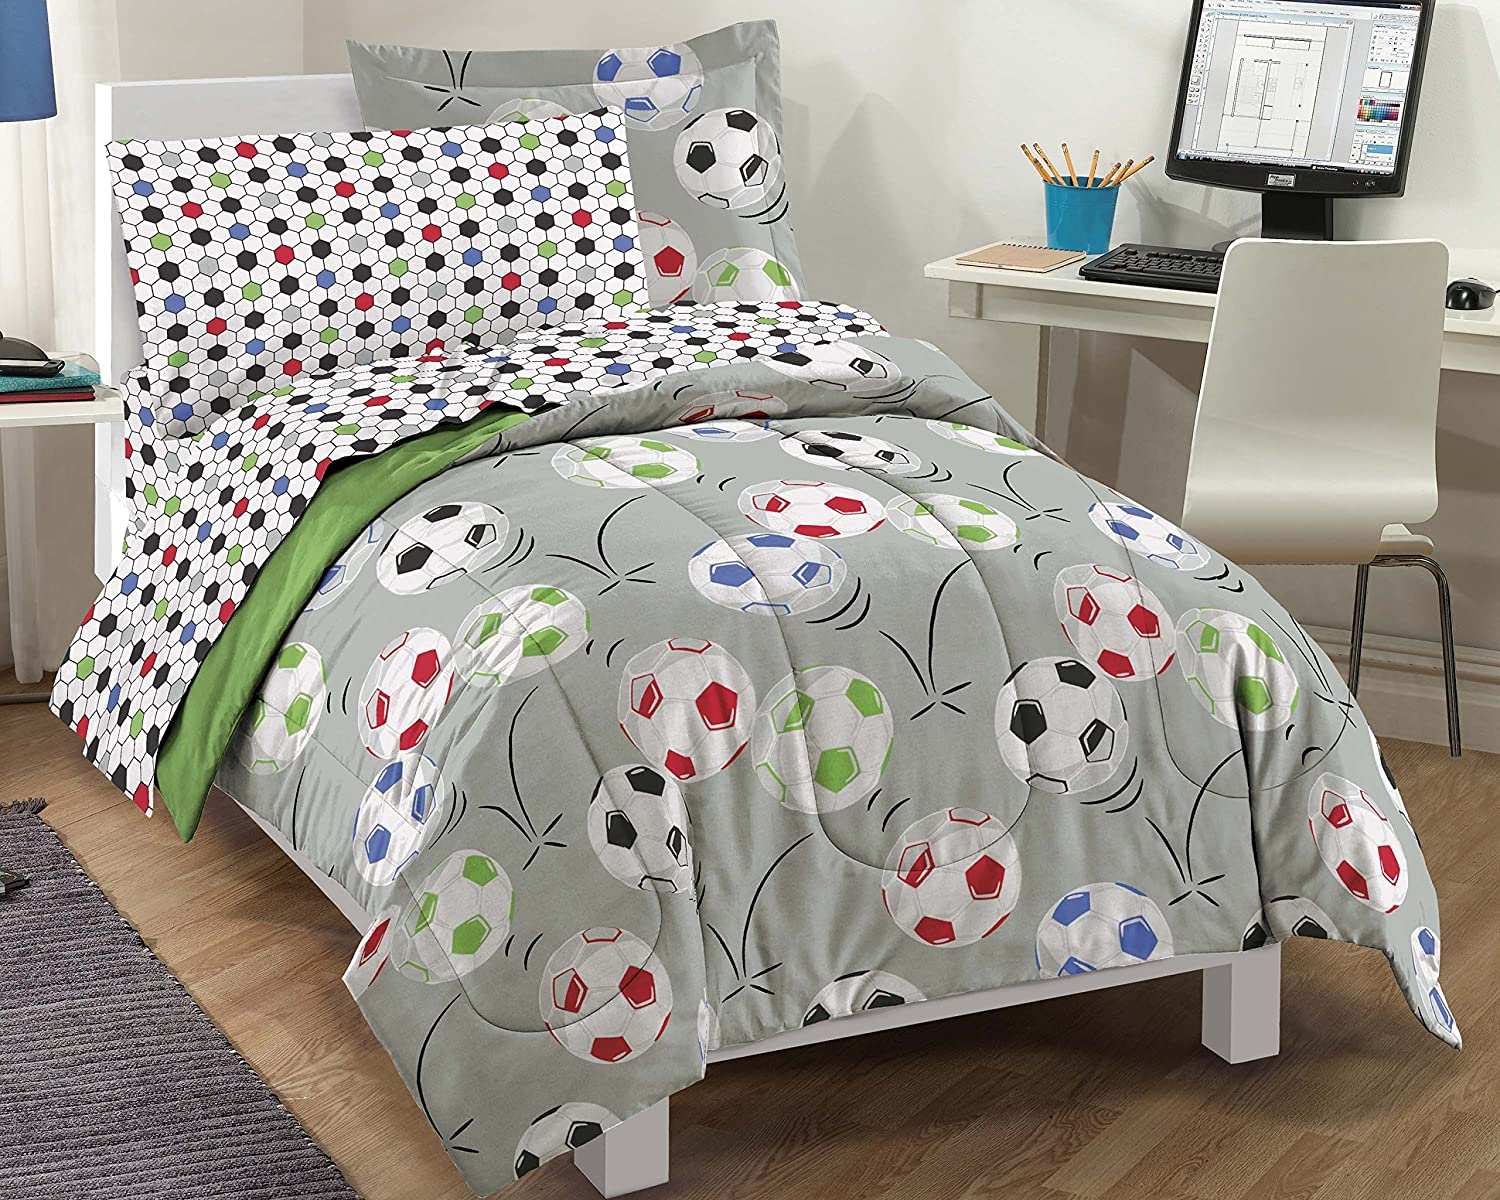 style kids factory comforters teen cars dream sheet set with ease sets piece boys bedding tractors and trucks comforter